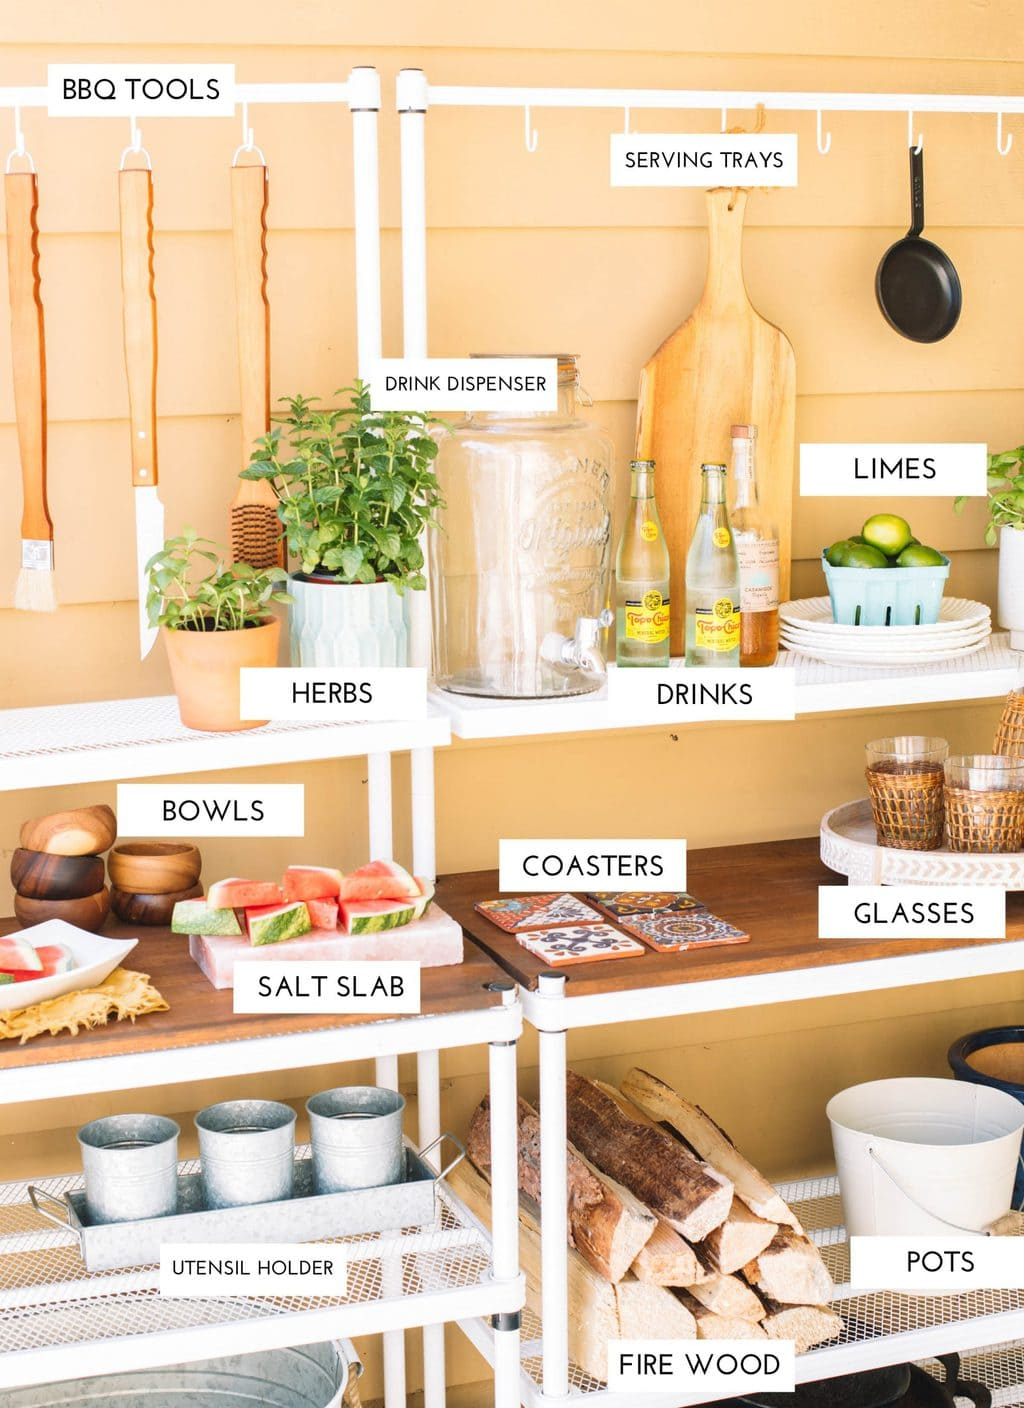 An outdoor buffet set up with a drink dispenser, herbs, glassware, plates, and a utensil holder.